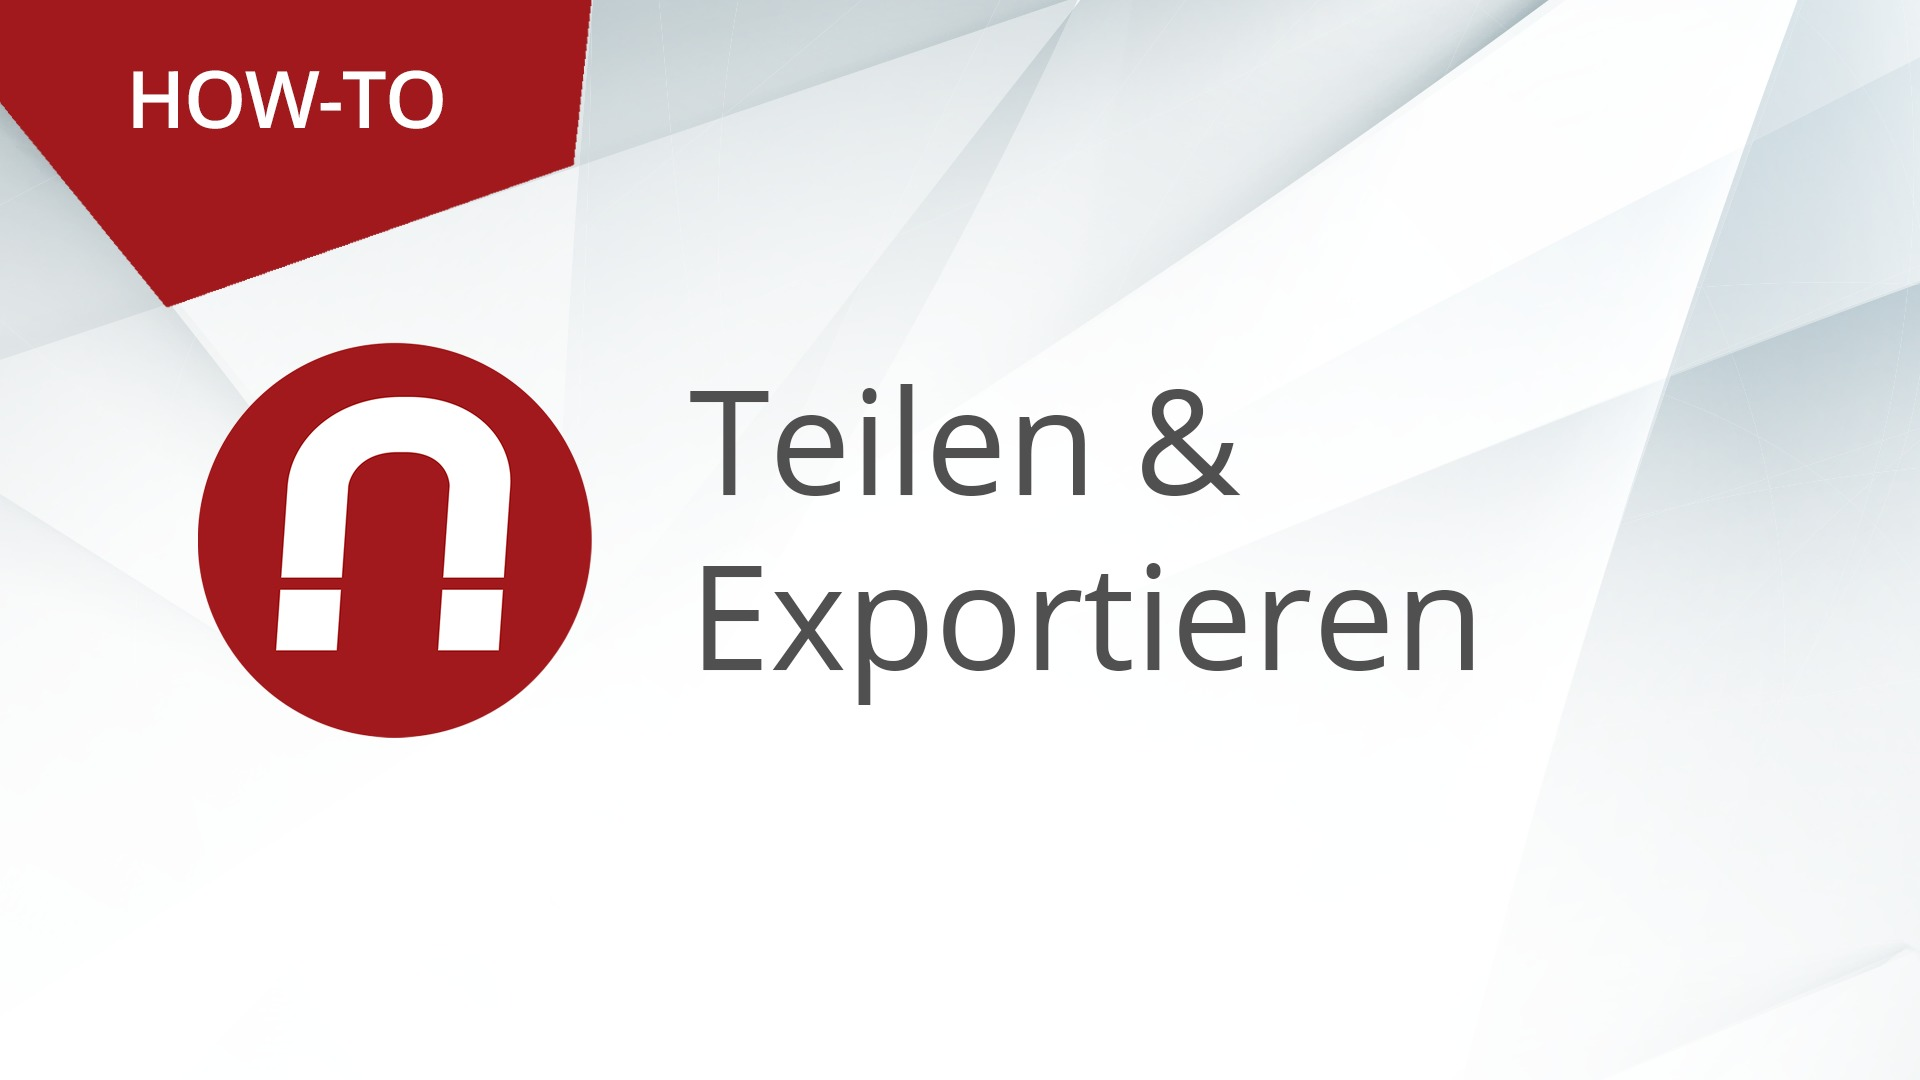 How-To: AMAGNO Advanced – Teilen & Exportieren